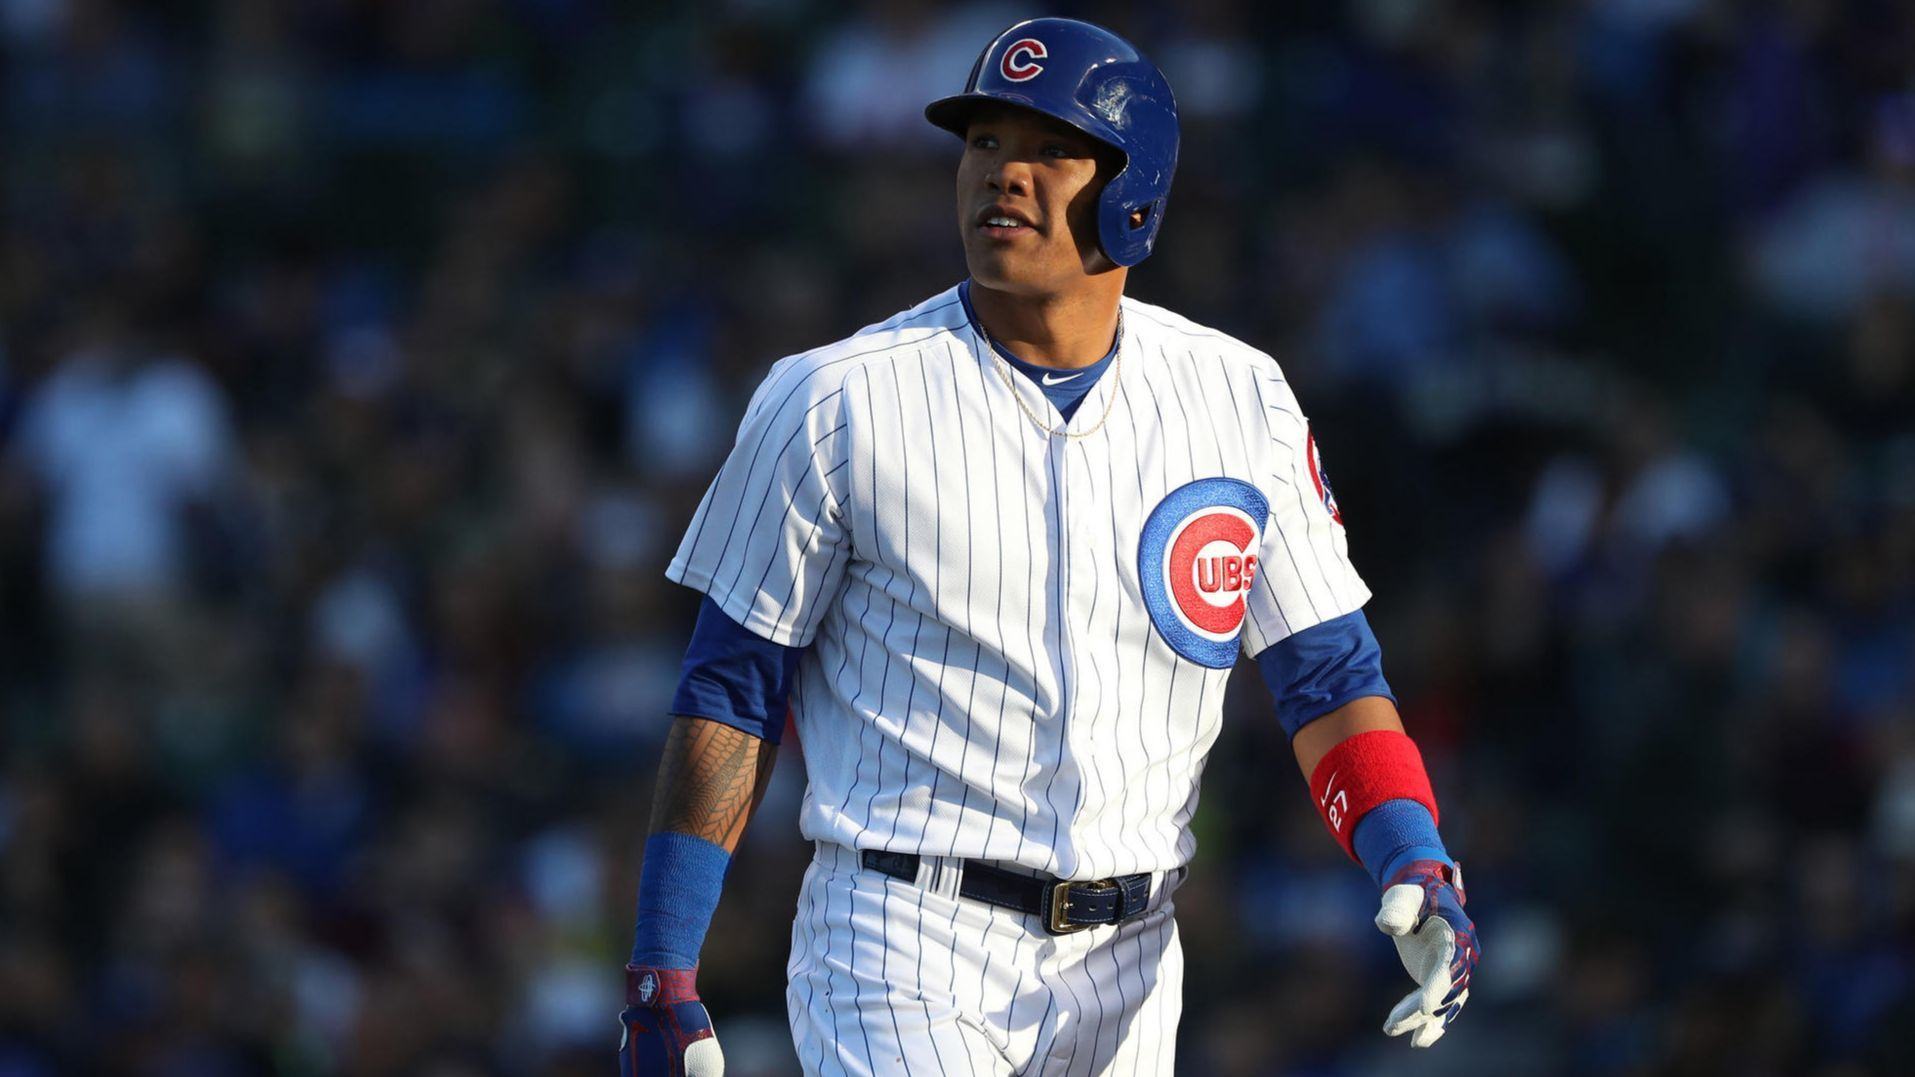 Cubs and White Sox avoid arbitration as Kris Bryant, Javier Baez and Jose Abreu among 11 to sign